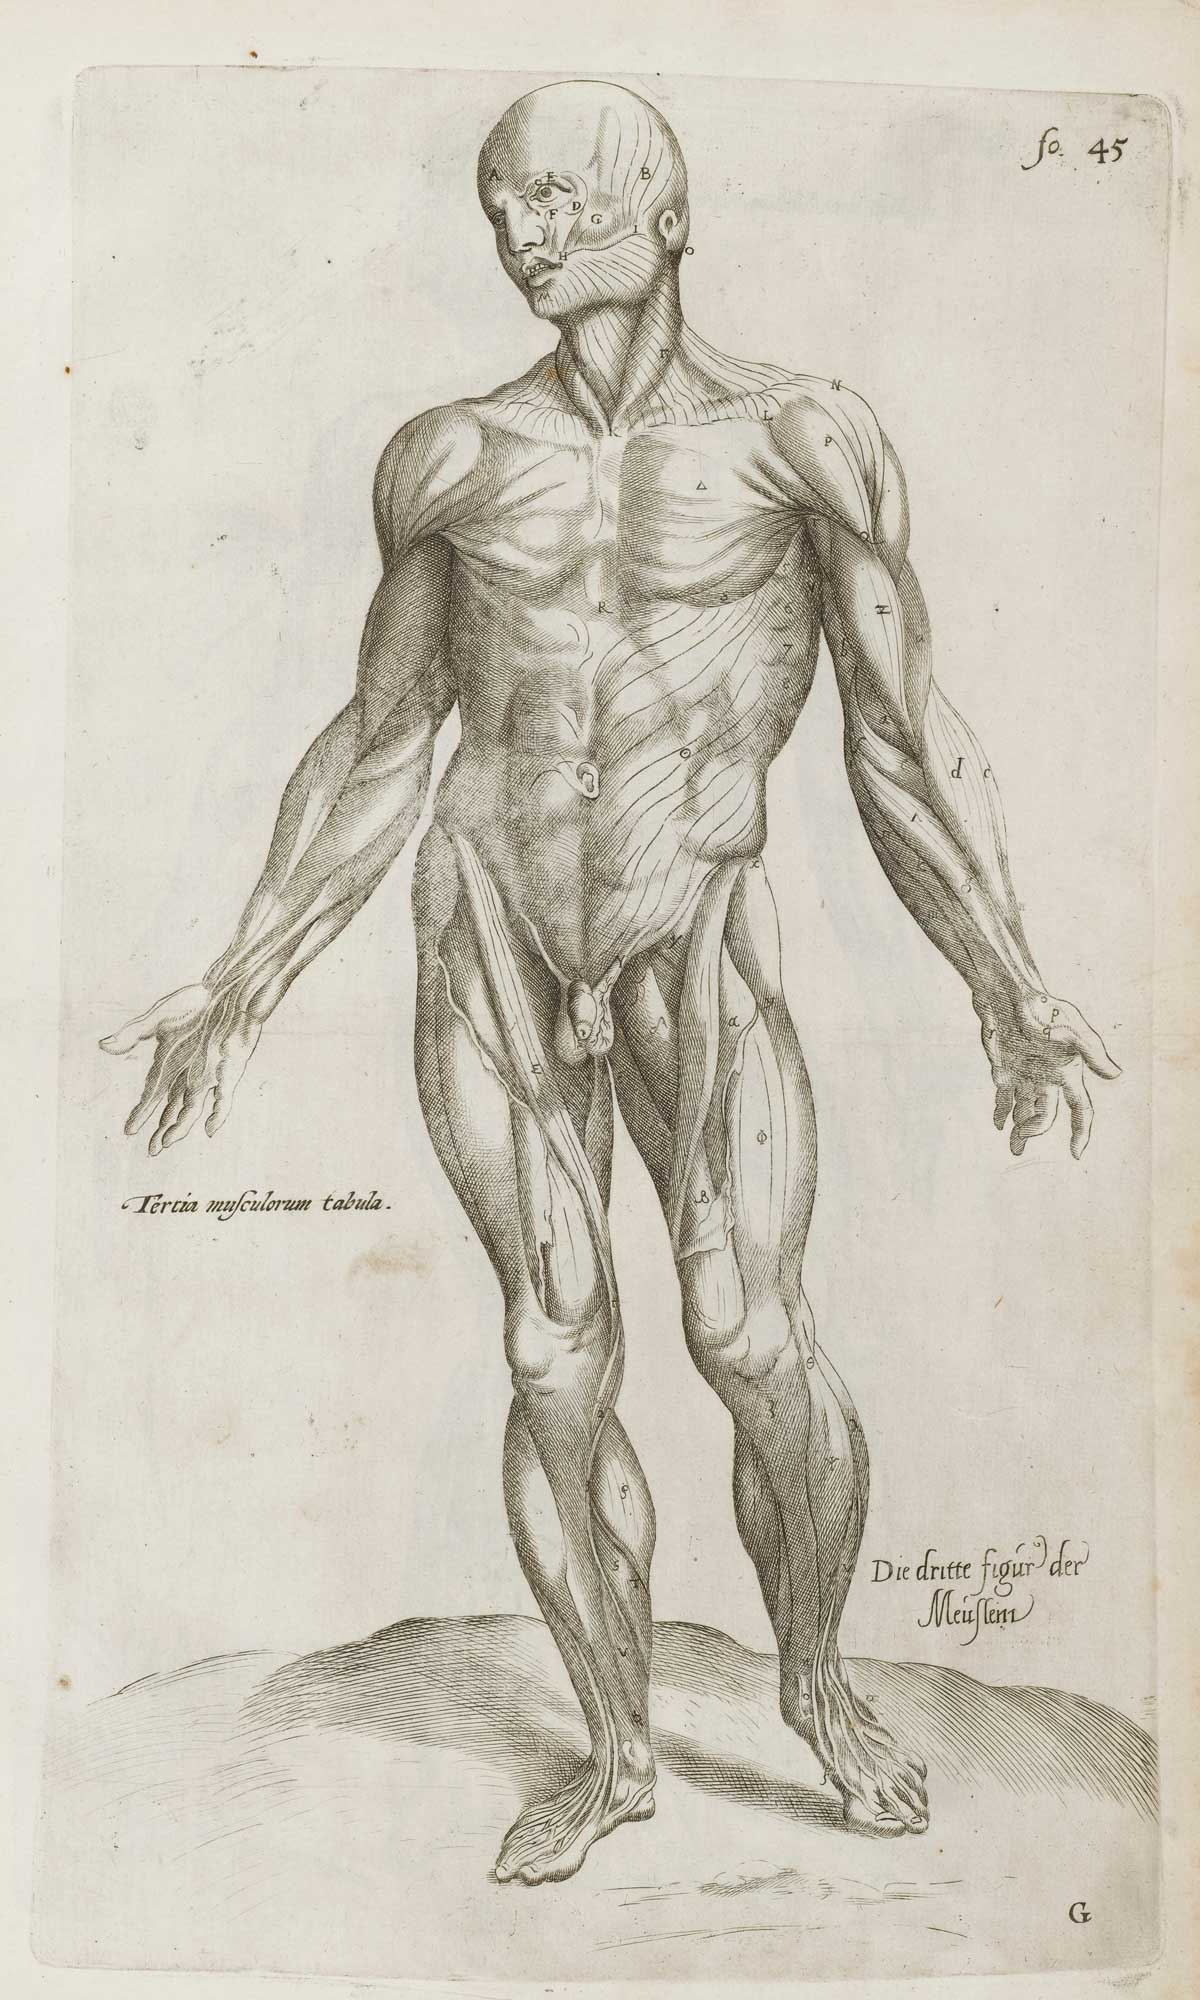 Vesalius, 'De Humani Corporis Fabrica Epitome'. Wellcome Collection.